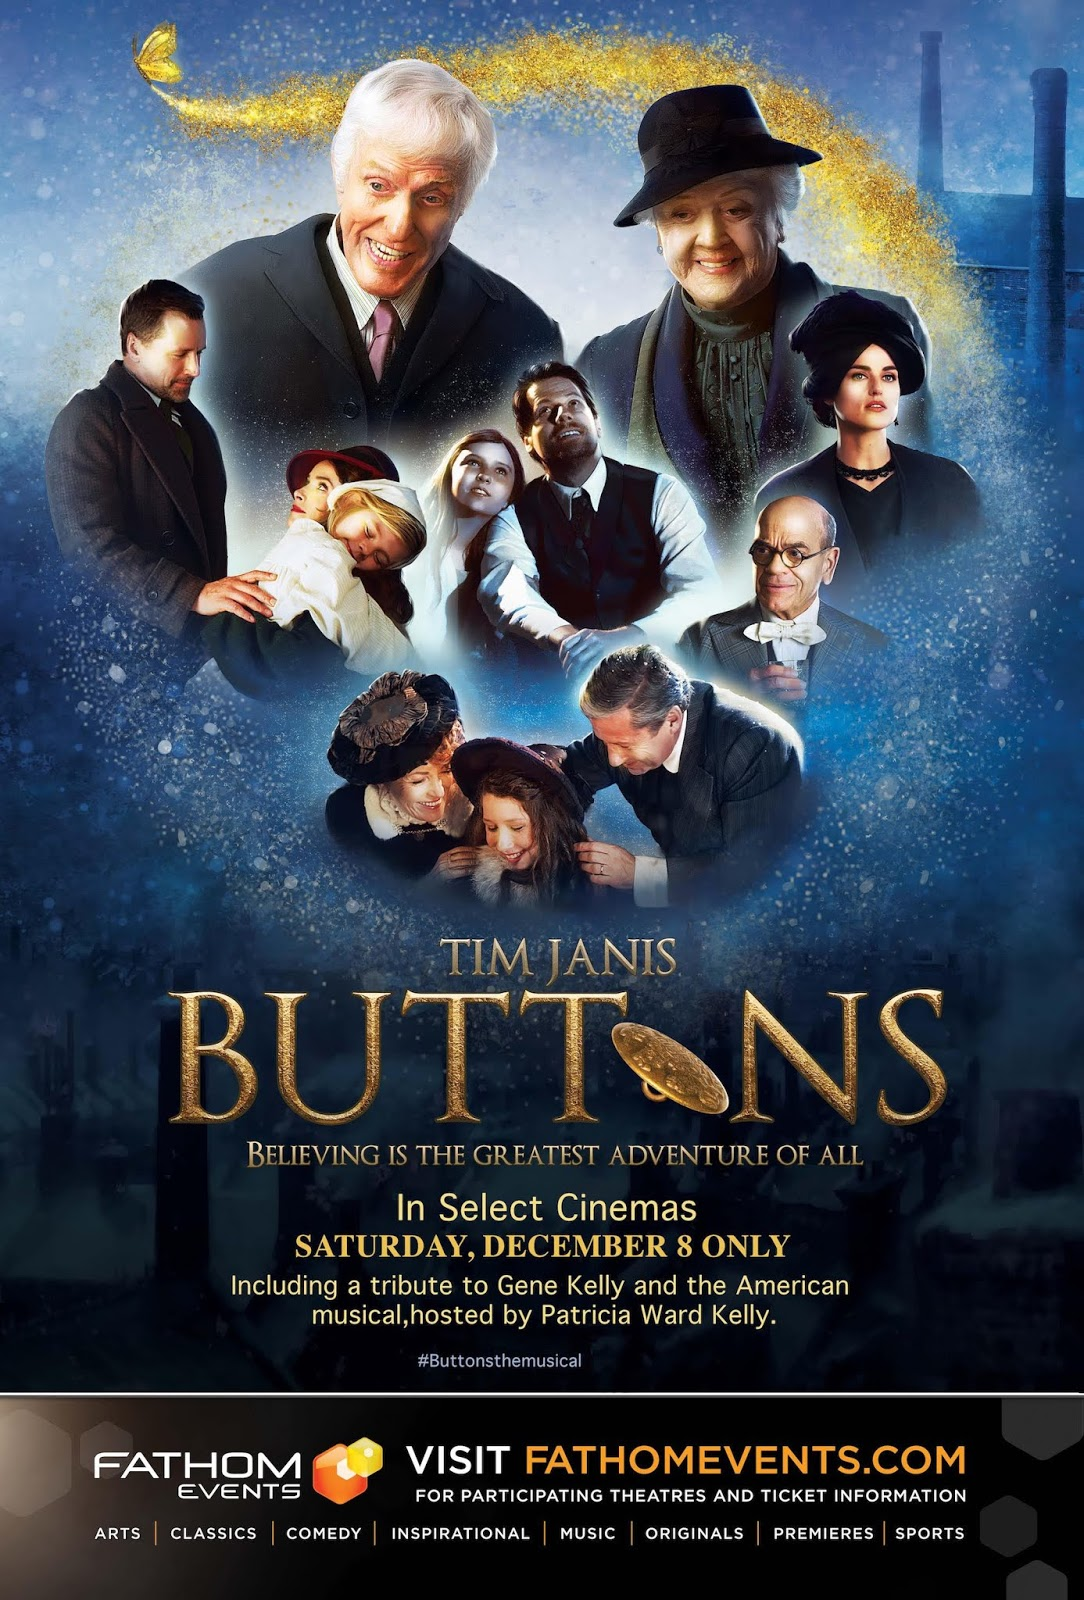 Another Old Movie Blog Buttons 2018 Owen Brown Top Leux Studio A New Titled With Wonderful Cast Including No Less Than Angela Lansbury And Dick Van Dyke Will Appear In Select Theaters December